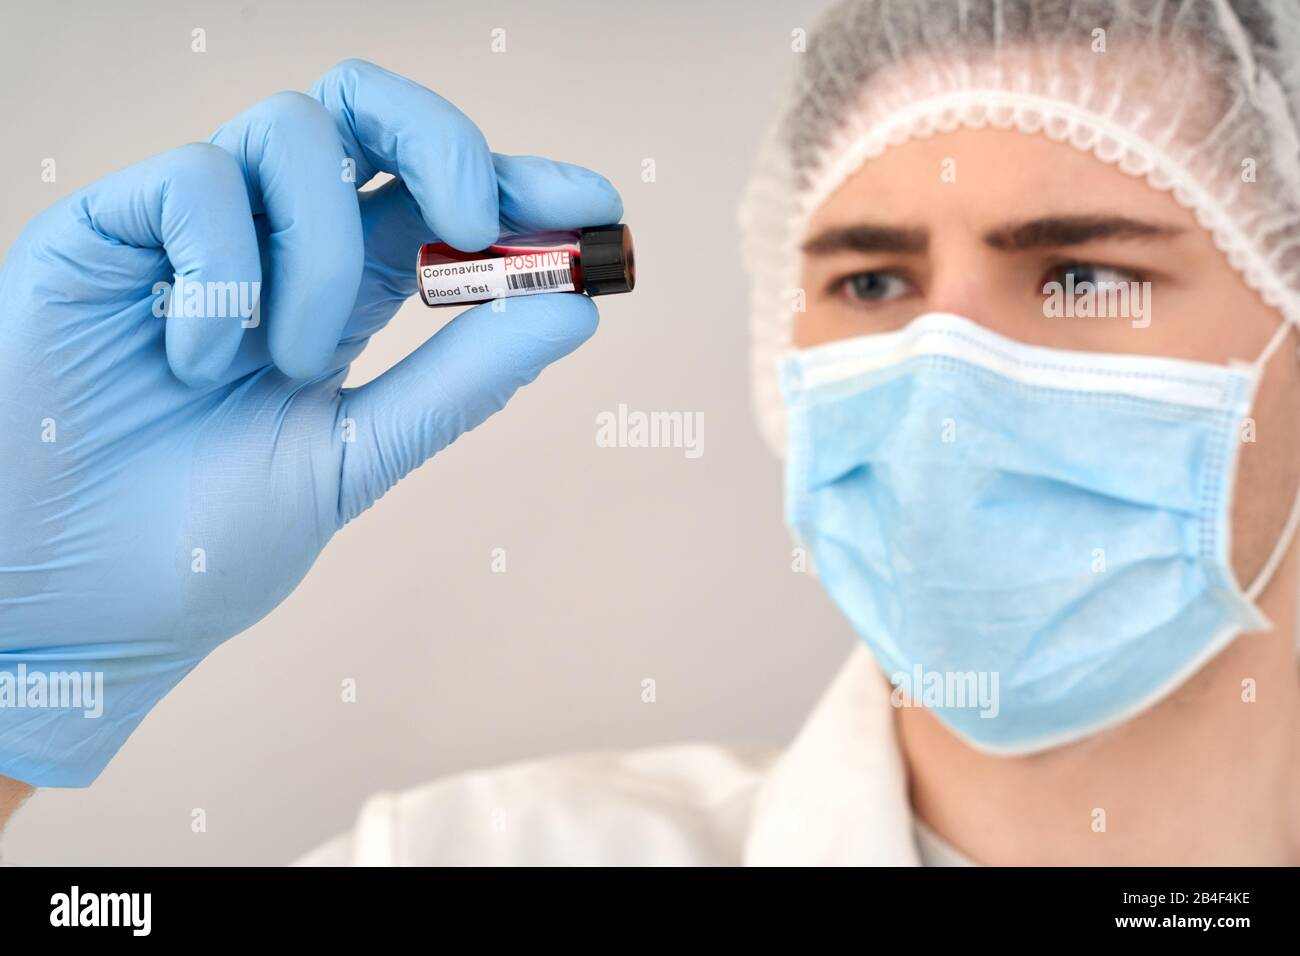 Coronavirus concept. Doctor in protective coverall and face mask holding blood sample in hand, checking test results and standing against grey backgro Stock Photo